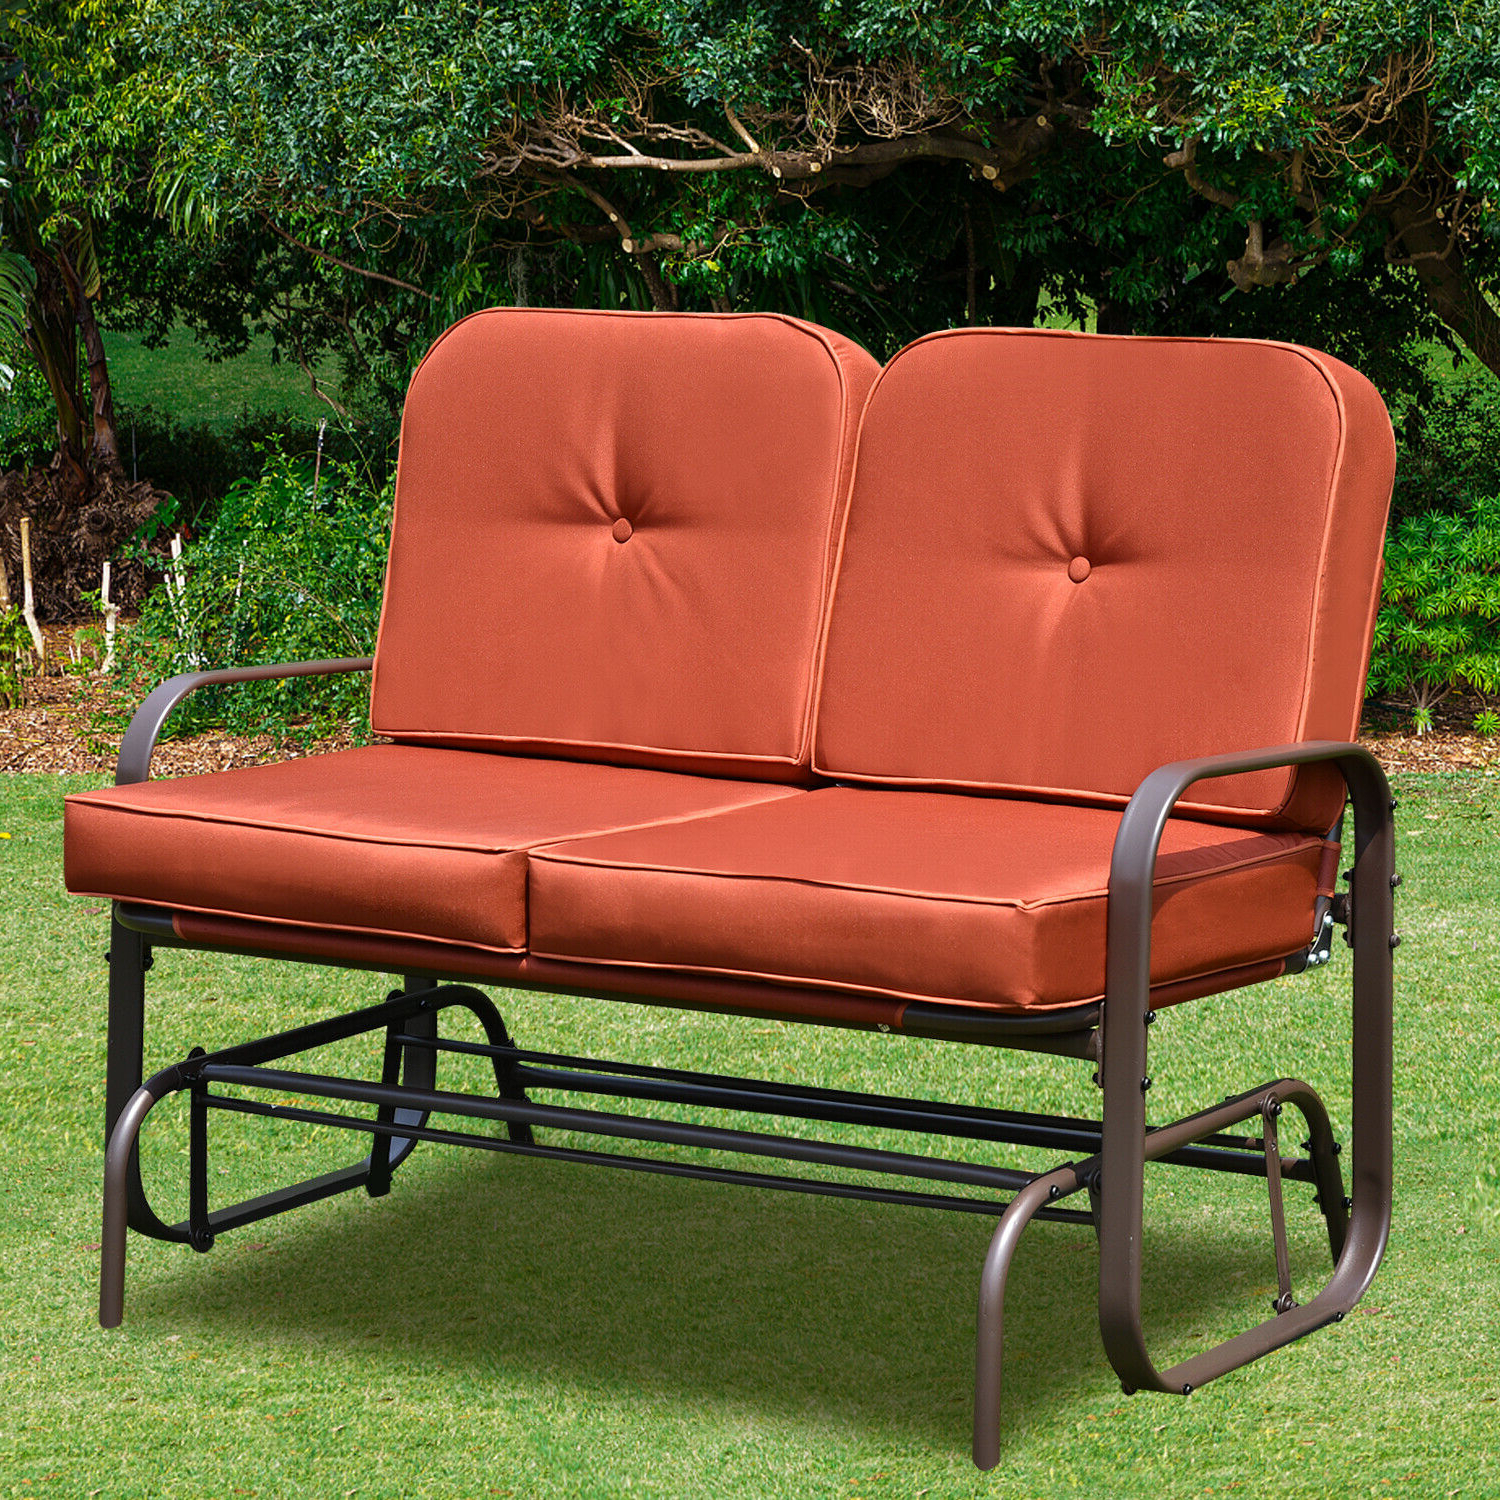 Center Table Double Glider Benches Throughout Favorite Patio Glider Bench Chair 2 Person Rocker Loveseat Outdoor Furniture W/  Cushions (Gallery 14 of 30)